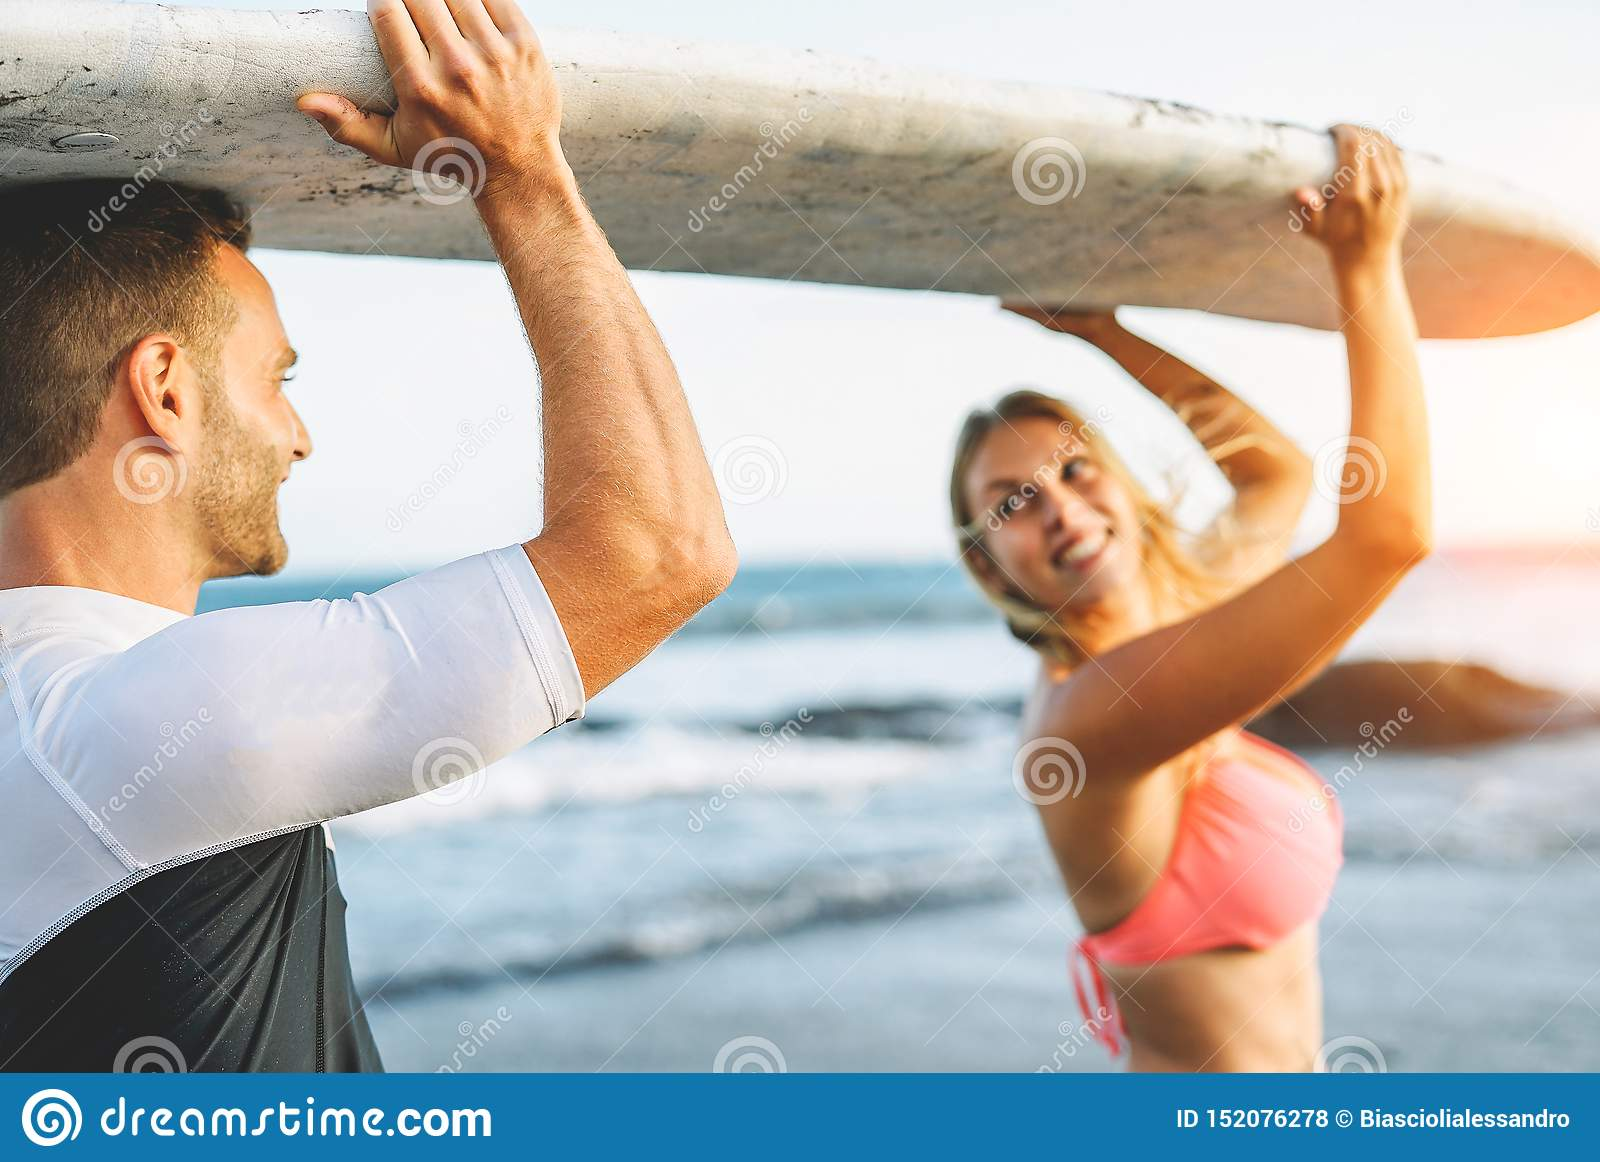 Happy loving couple holding a surfboard and looking each other - Friends having fun surfing during a vacation